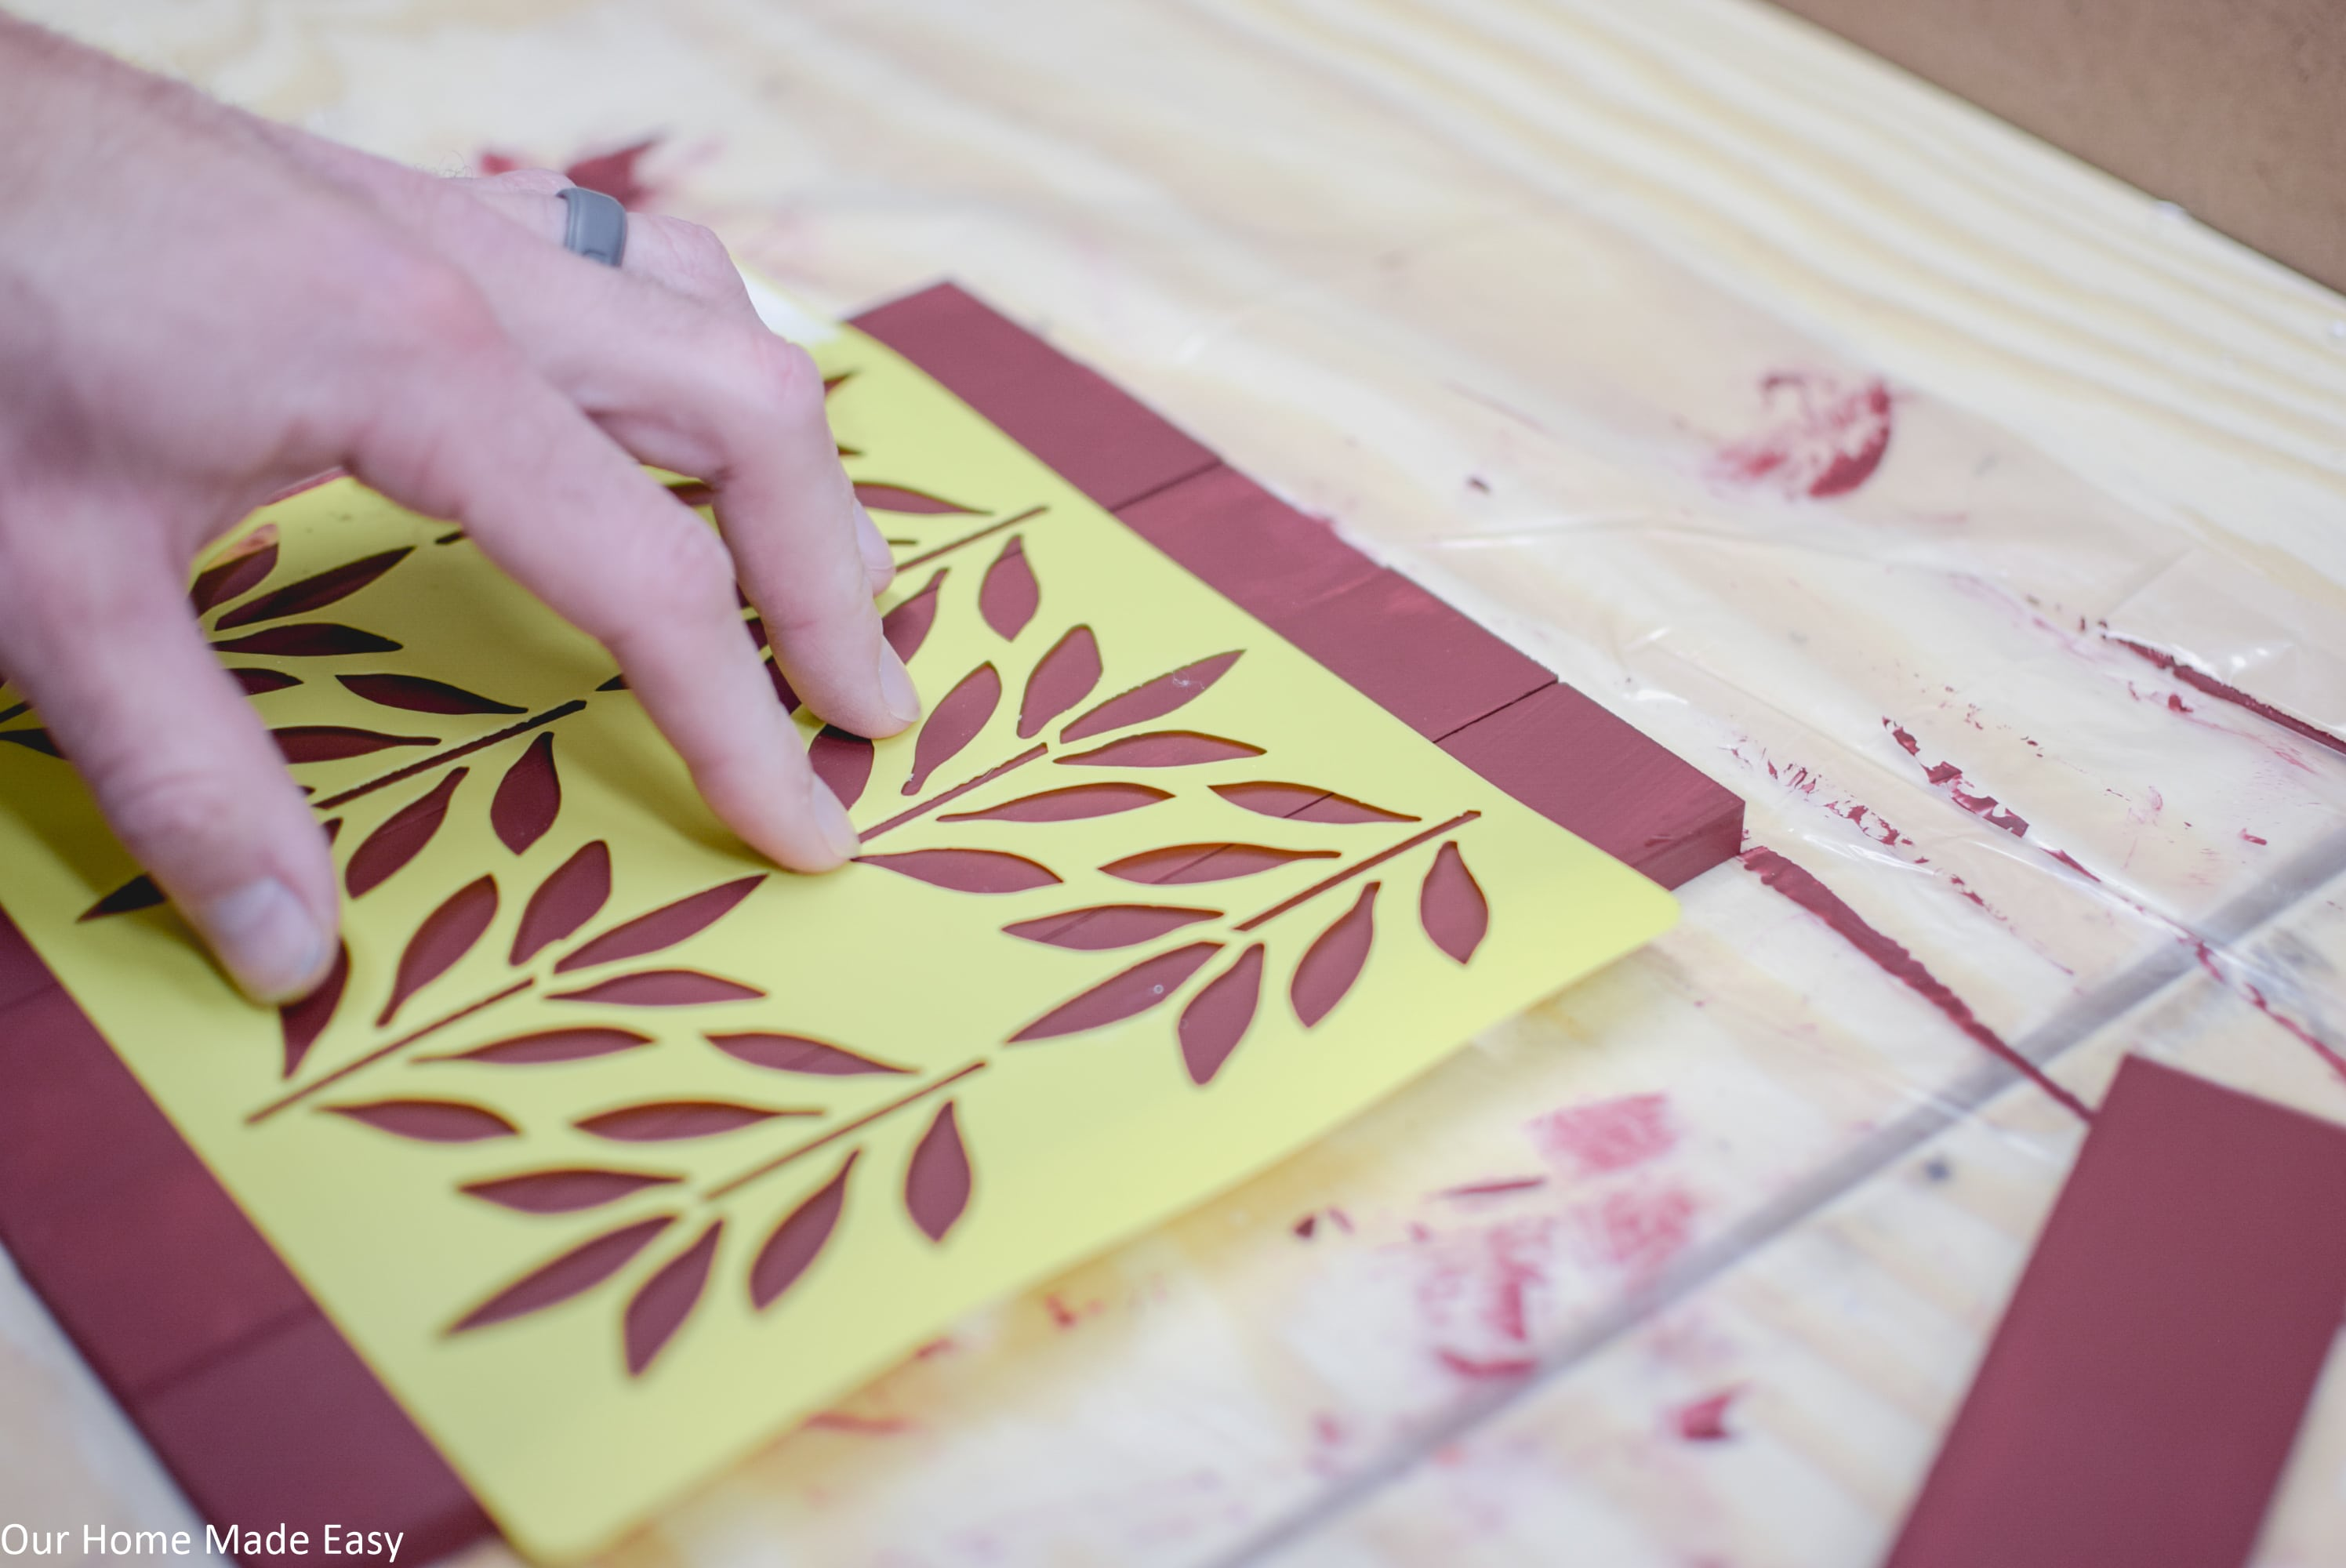 Use stencils to decorate your wood picture frame